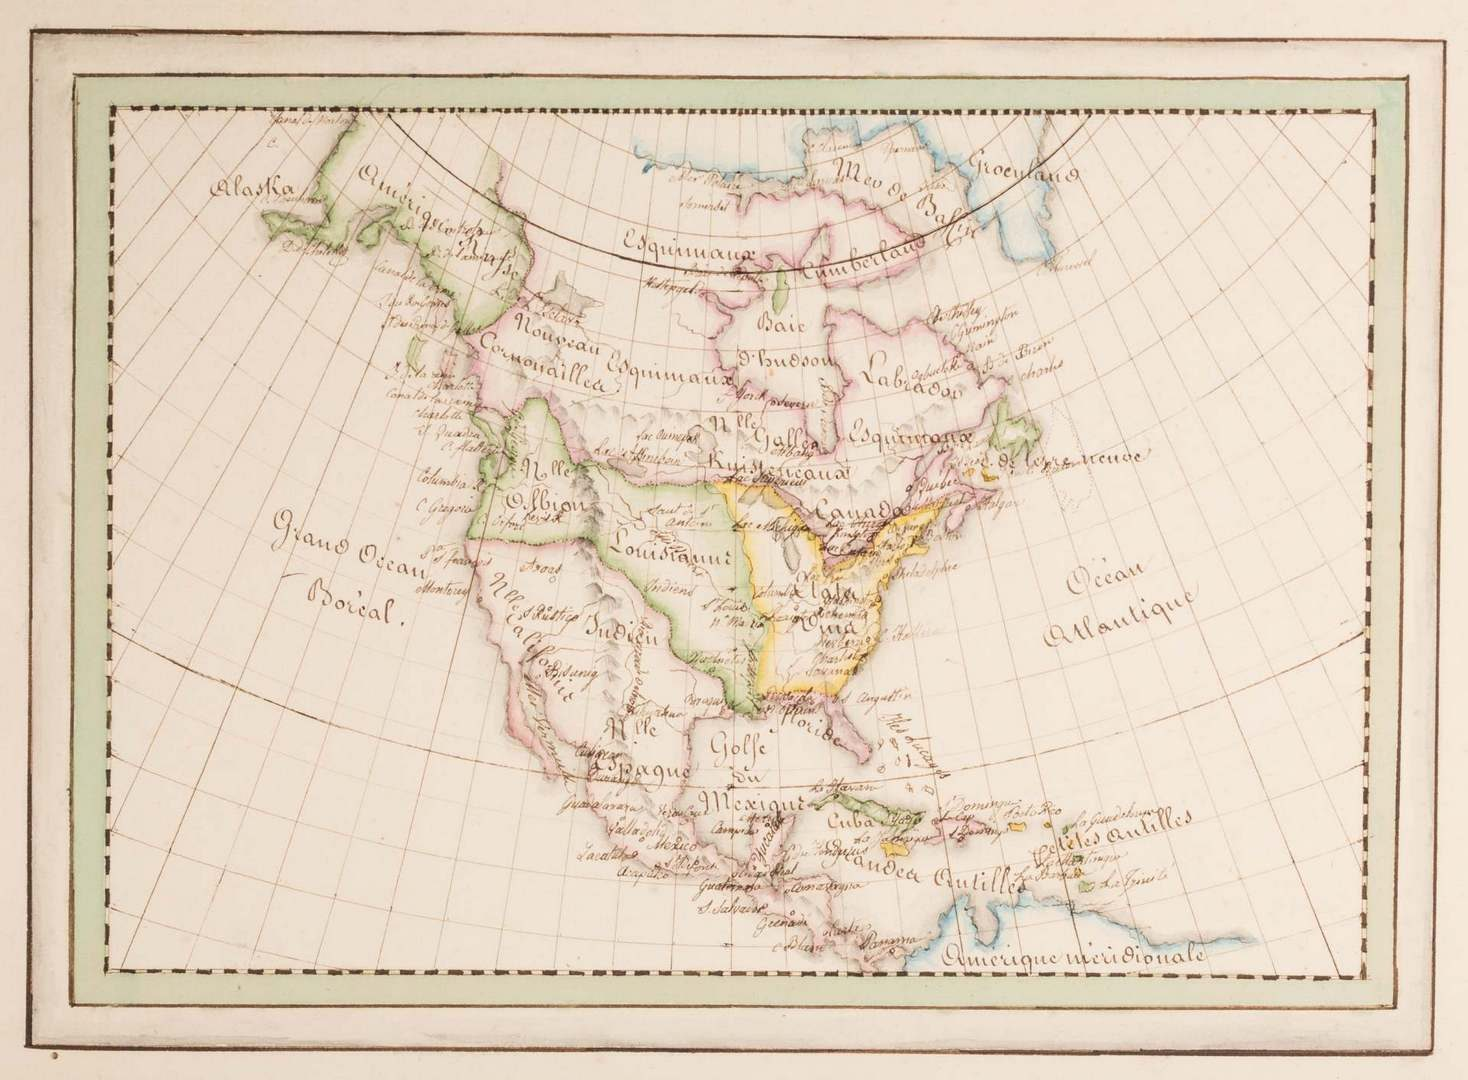 Lot 369: French Hand Drawn and Colored Atlas, Circa 1840